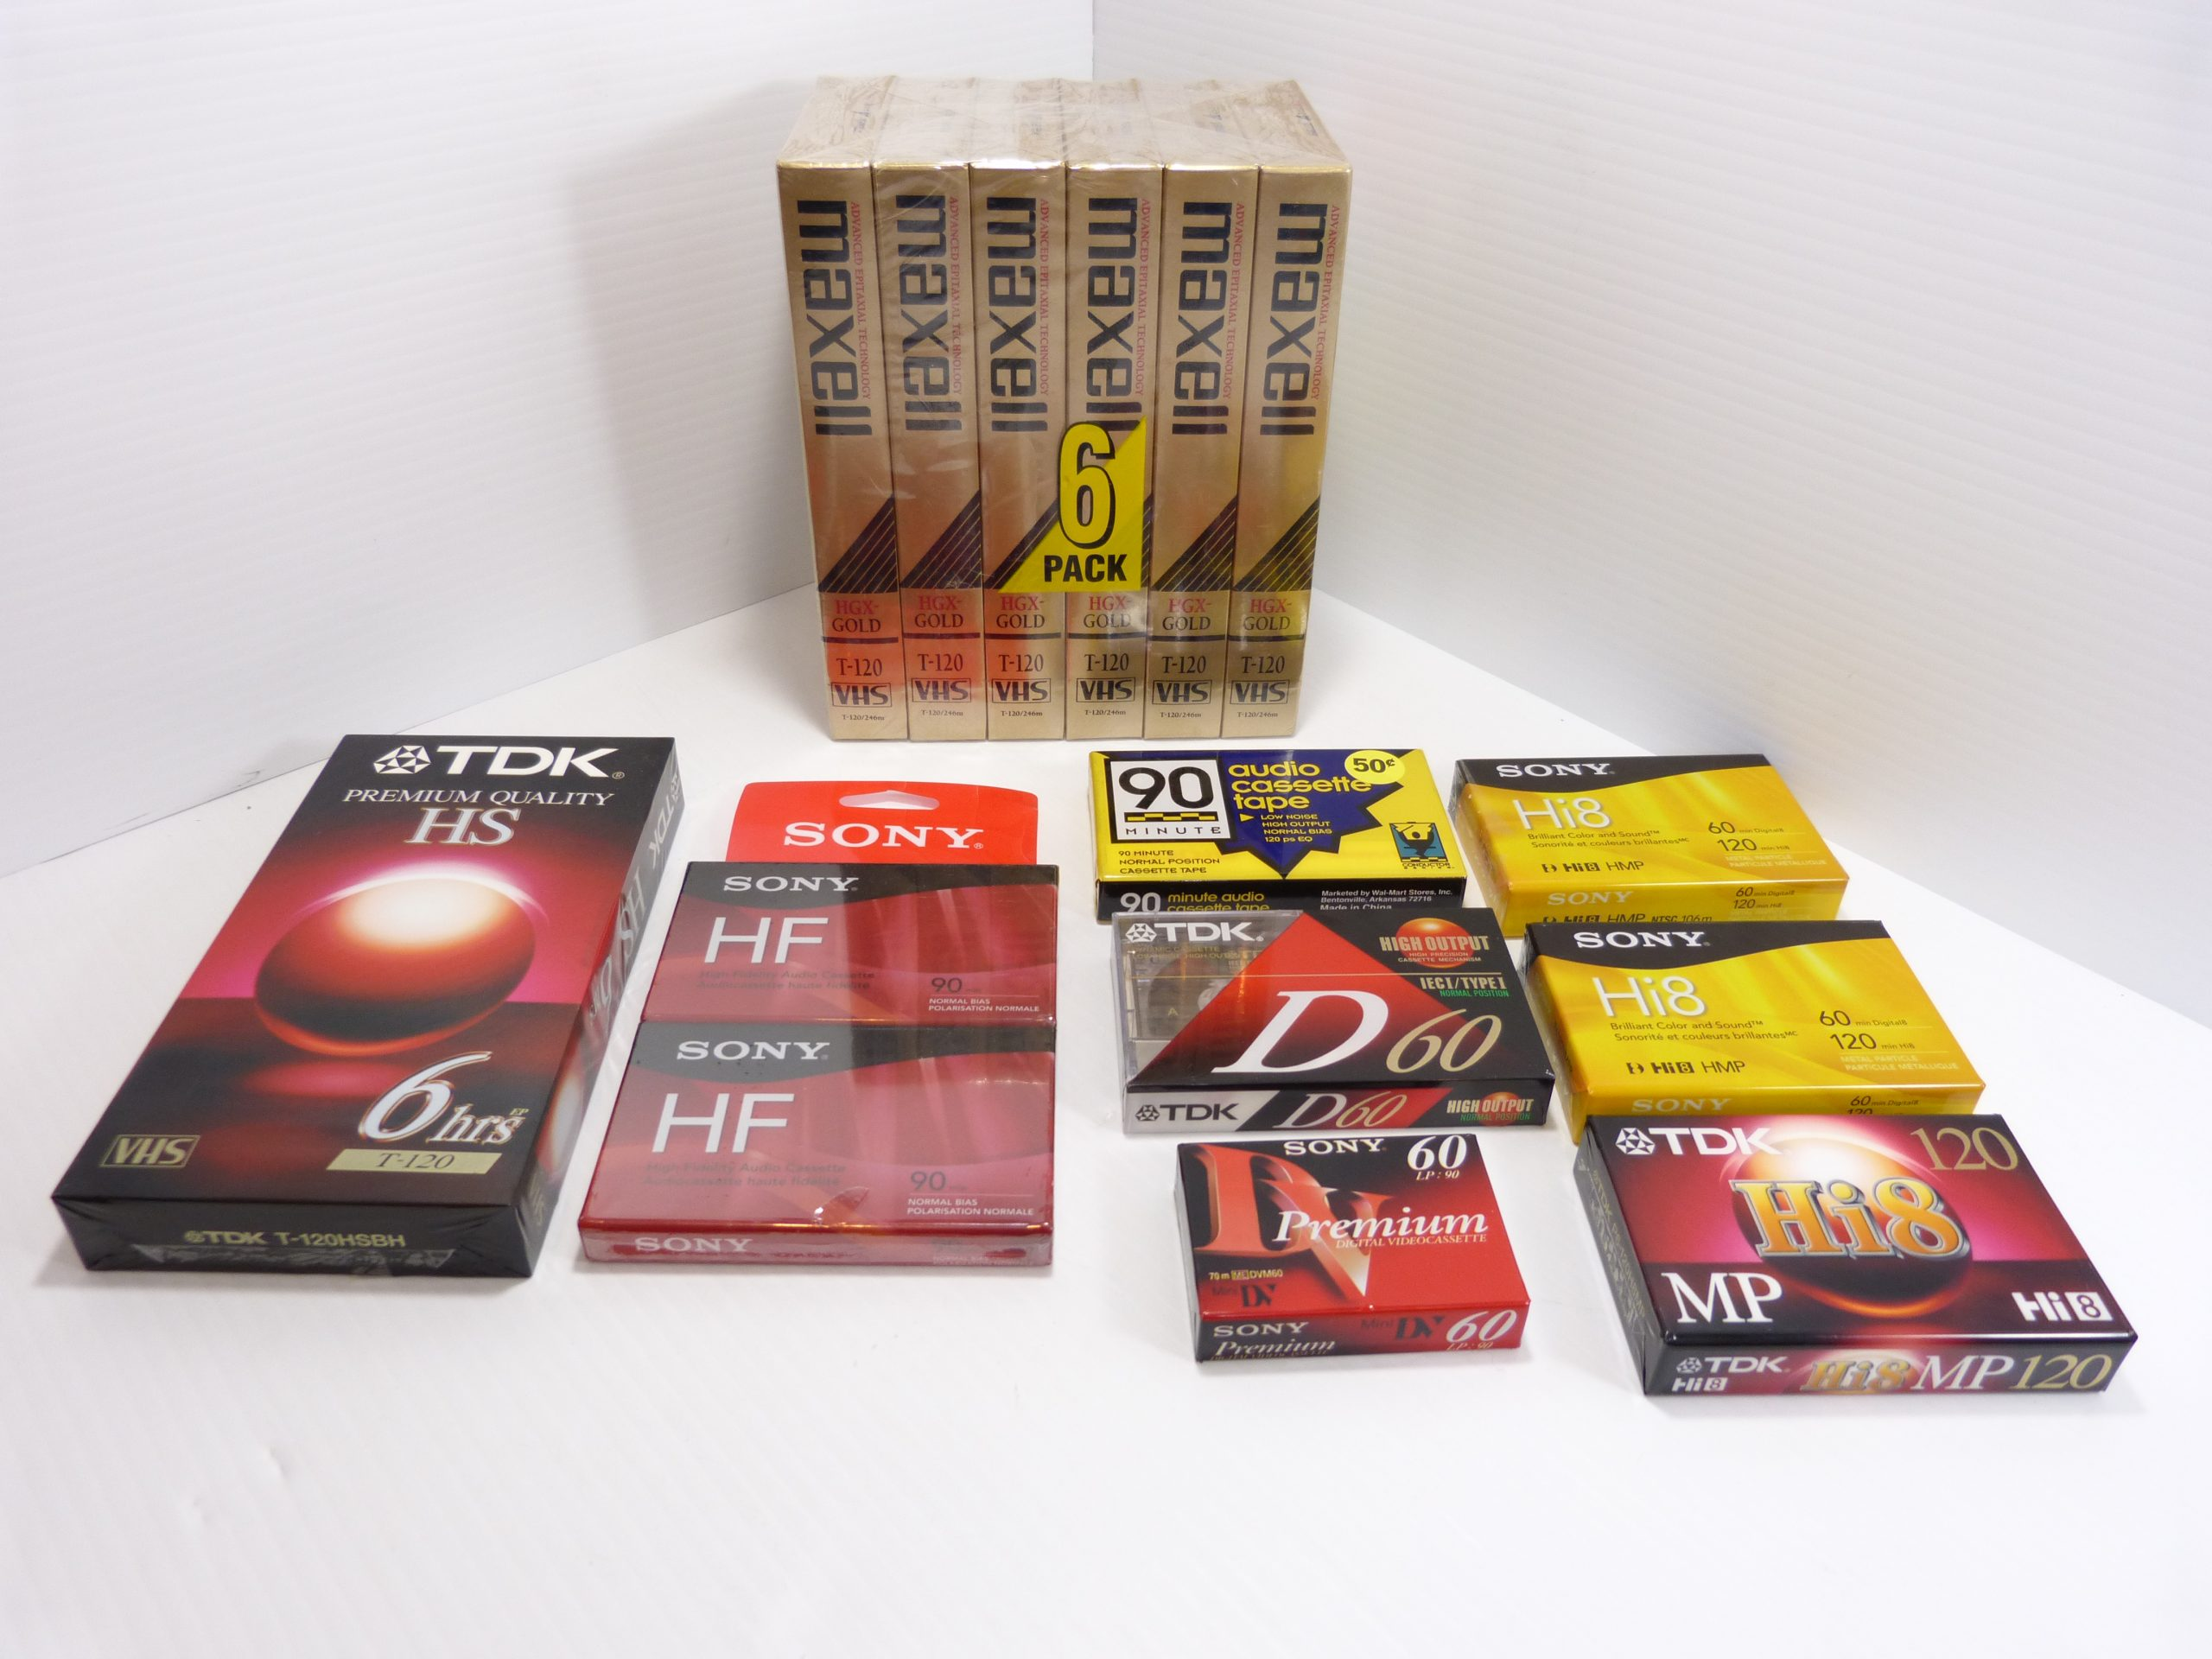 Magnetic Media Mixed Lot - 7 Vhs - 4 Audio -3 Hi 8 - 1 Mini DV. The item condition is new. Mixed lot of magnetic media as pictured. Please check photos carefully.